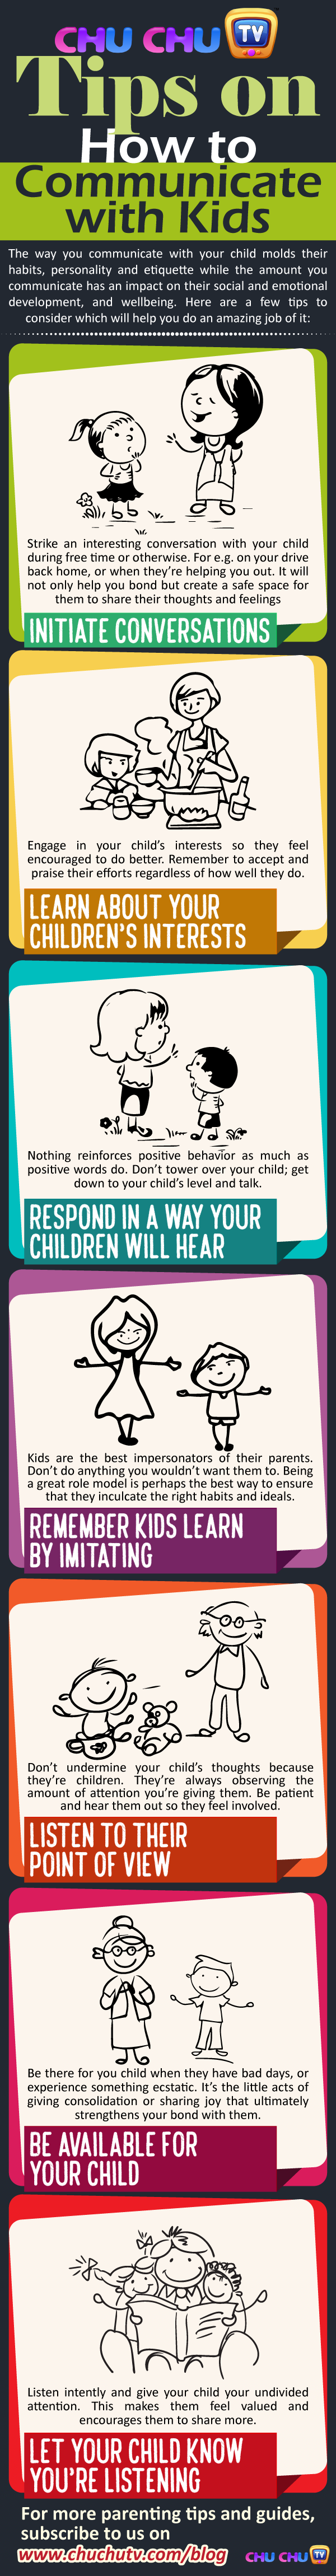 Tips on How to Communicate with Kids